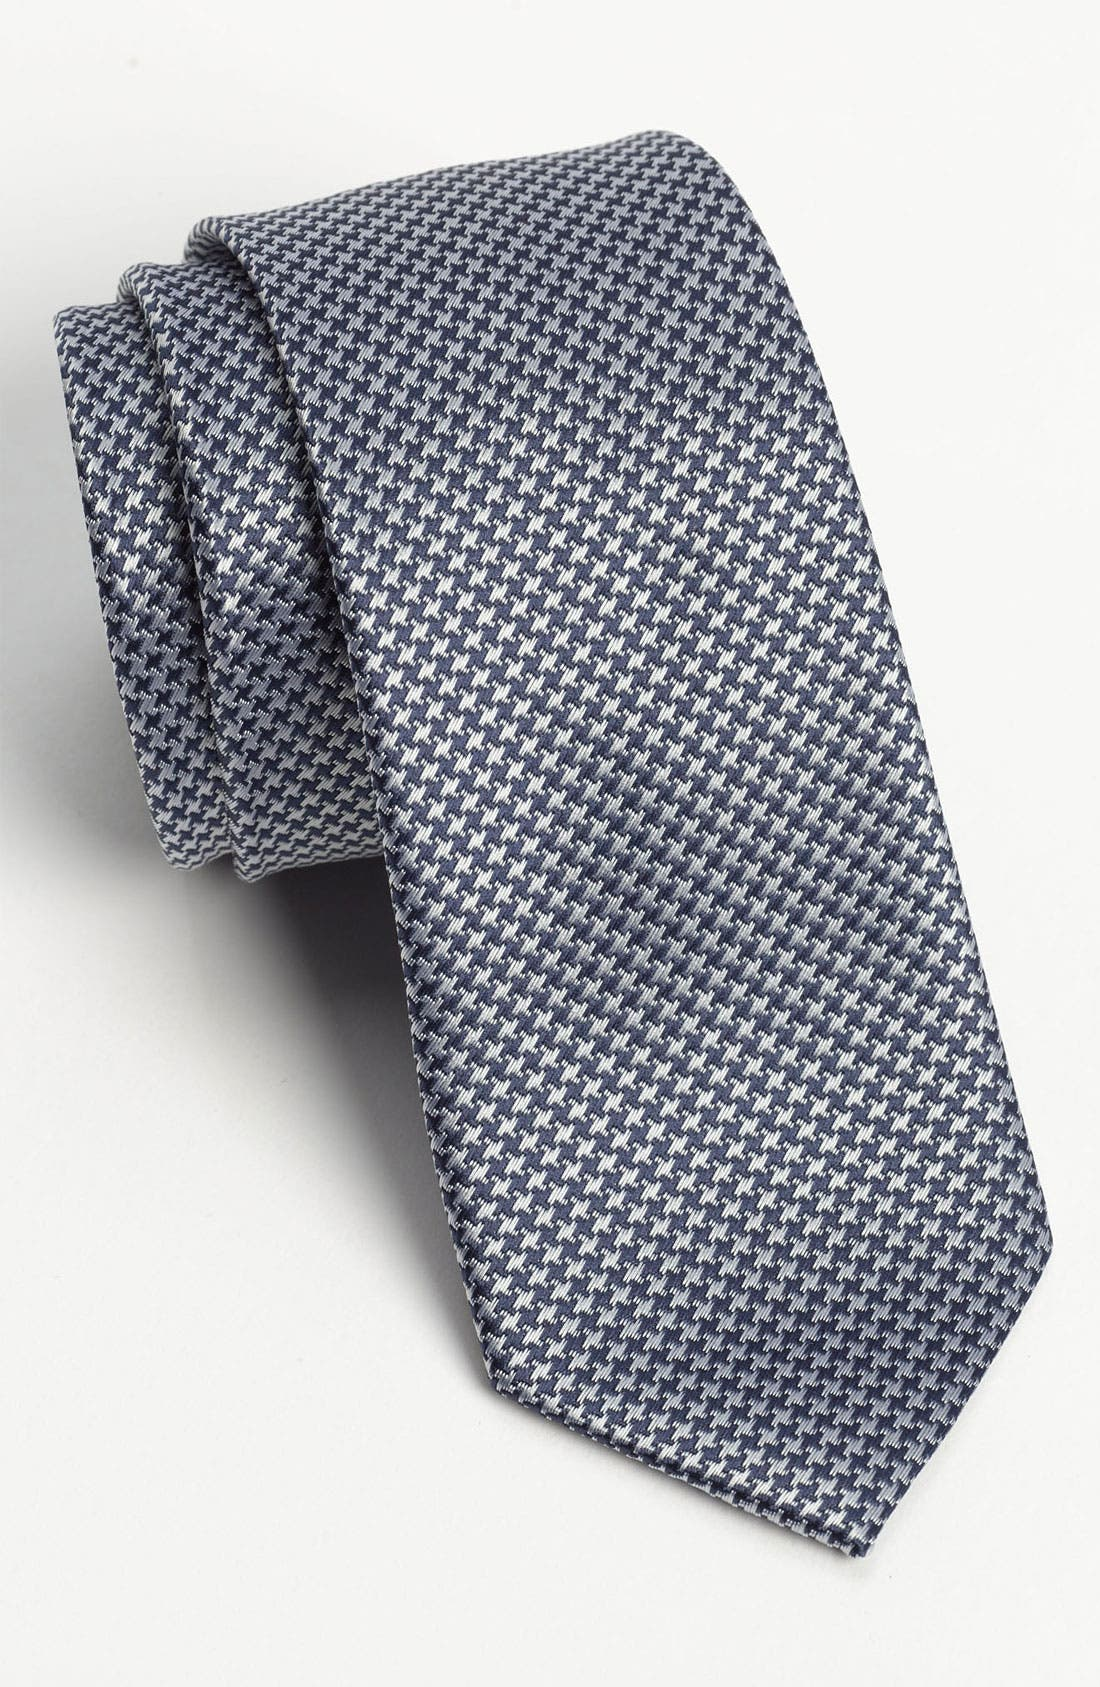 Alternate Image 1 Selected - Topman Houndstooth Woven Tie